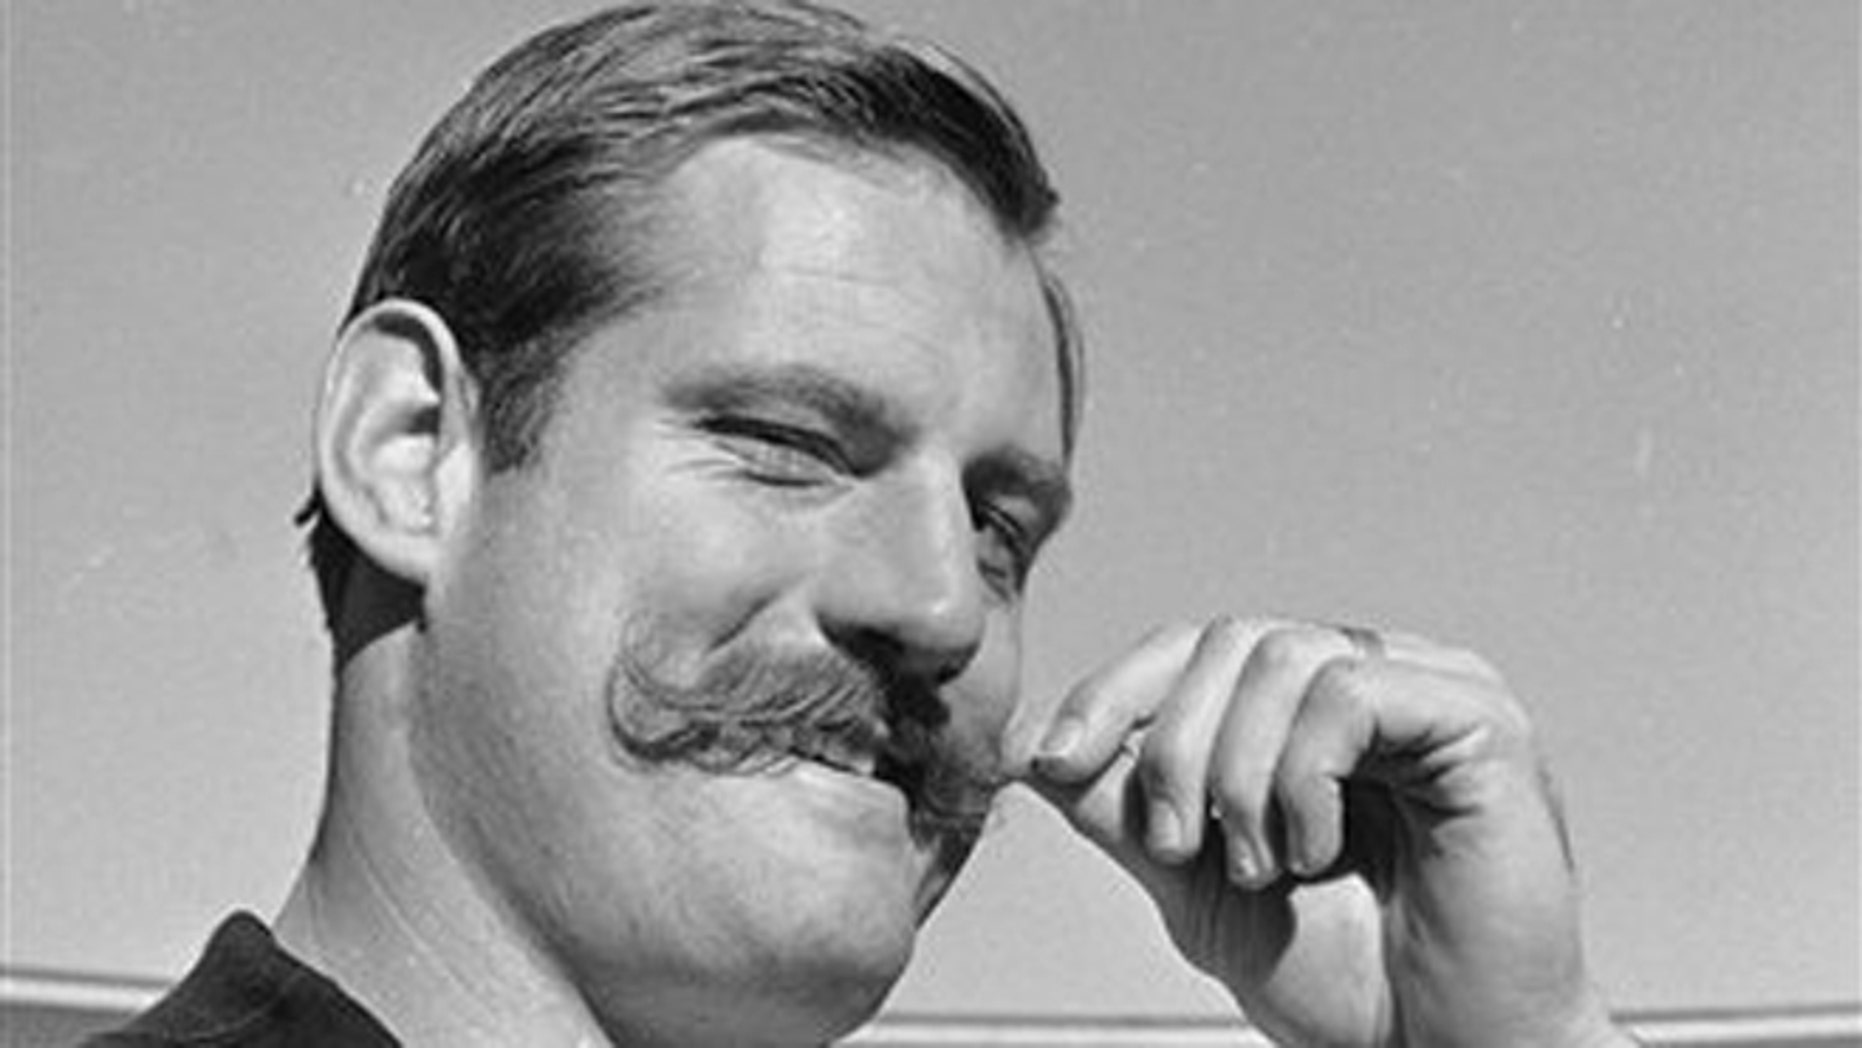 Jan. 3, 1968: In this file photo, Oakland Raiders defensive end Ben Davidson twirls his handlebar moustache in Oakland, Calif., as he contemplated the coming meeting with the Green Bay Packers in the NFL championship game.